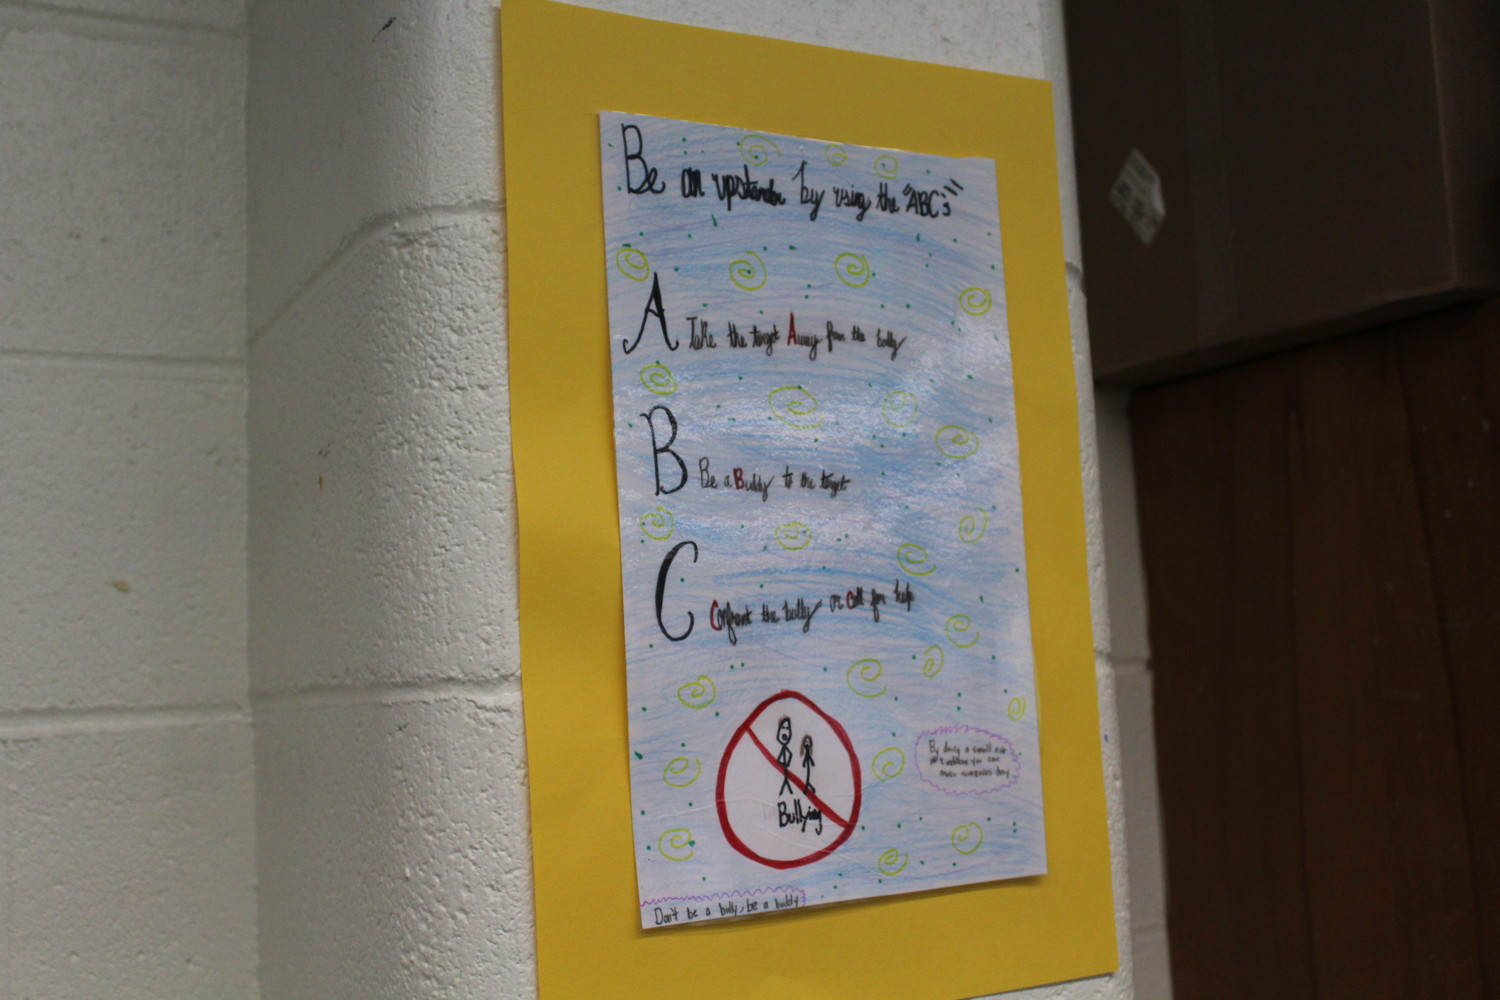 Fifth-grader Meghan Kalman's poster about bully drills was hung inside Kerry Hansen's classroom. Similar posters also appear throughout the building.